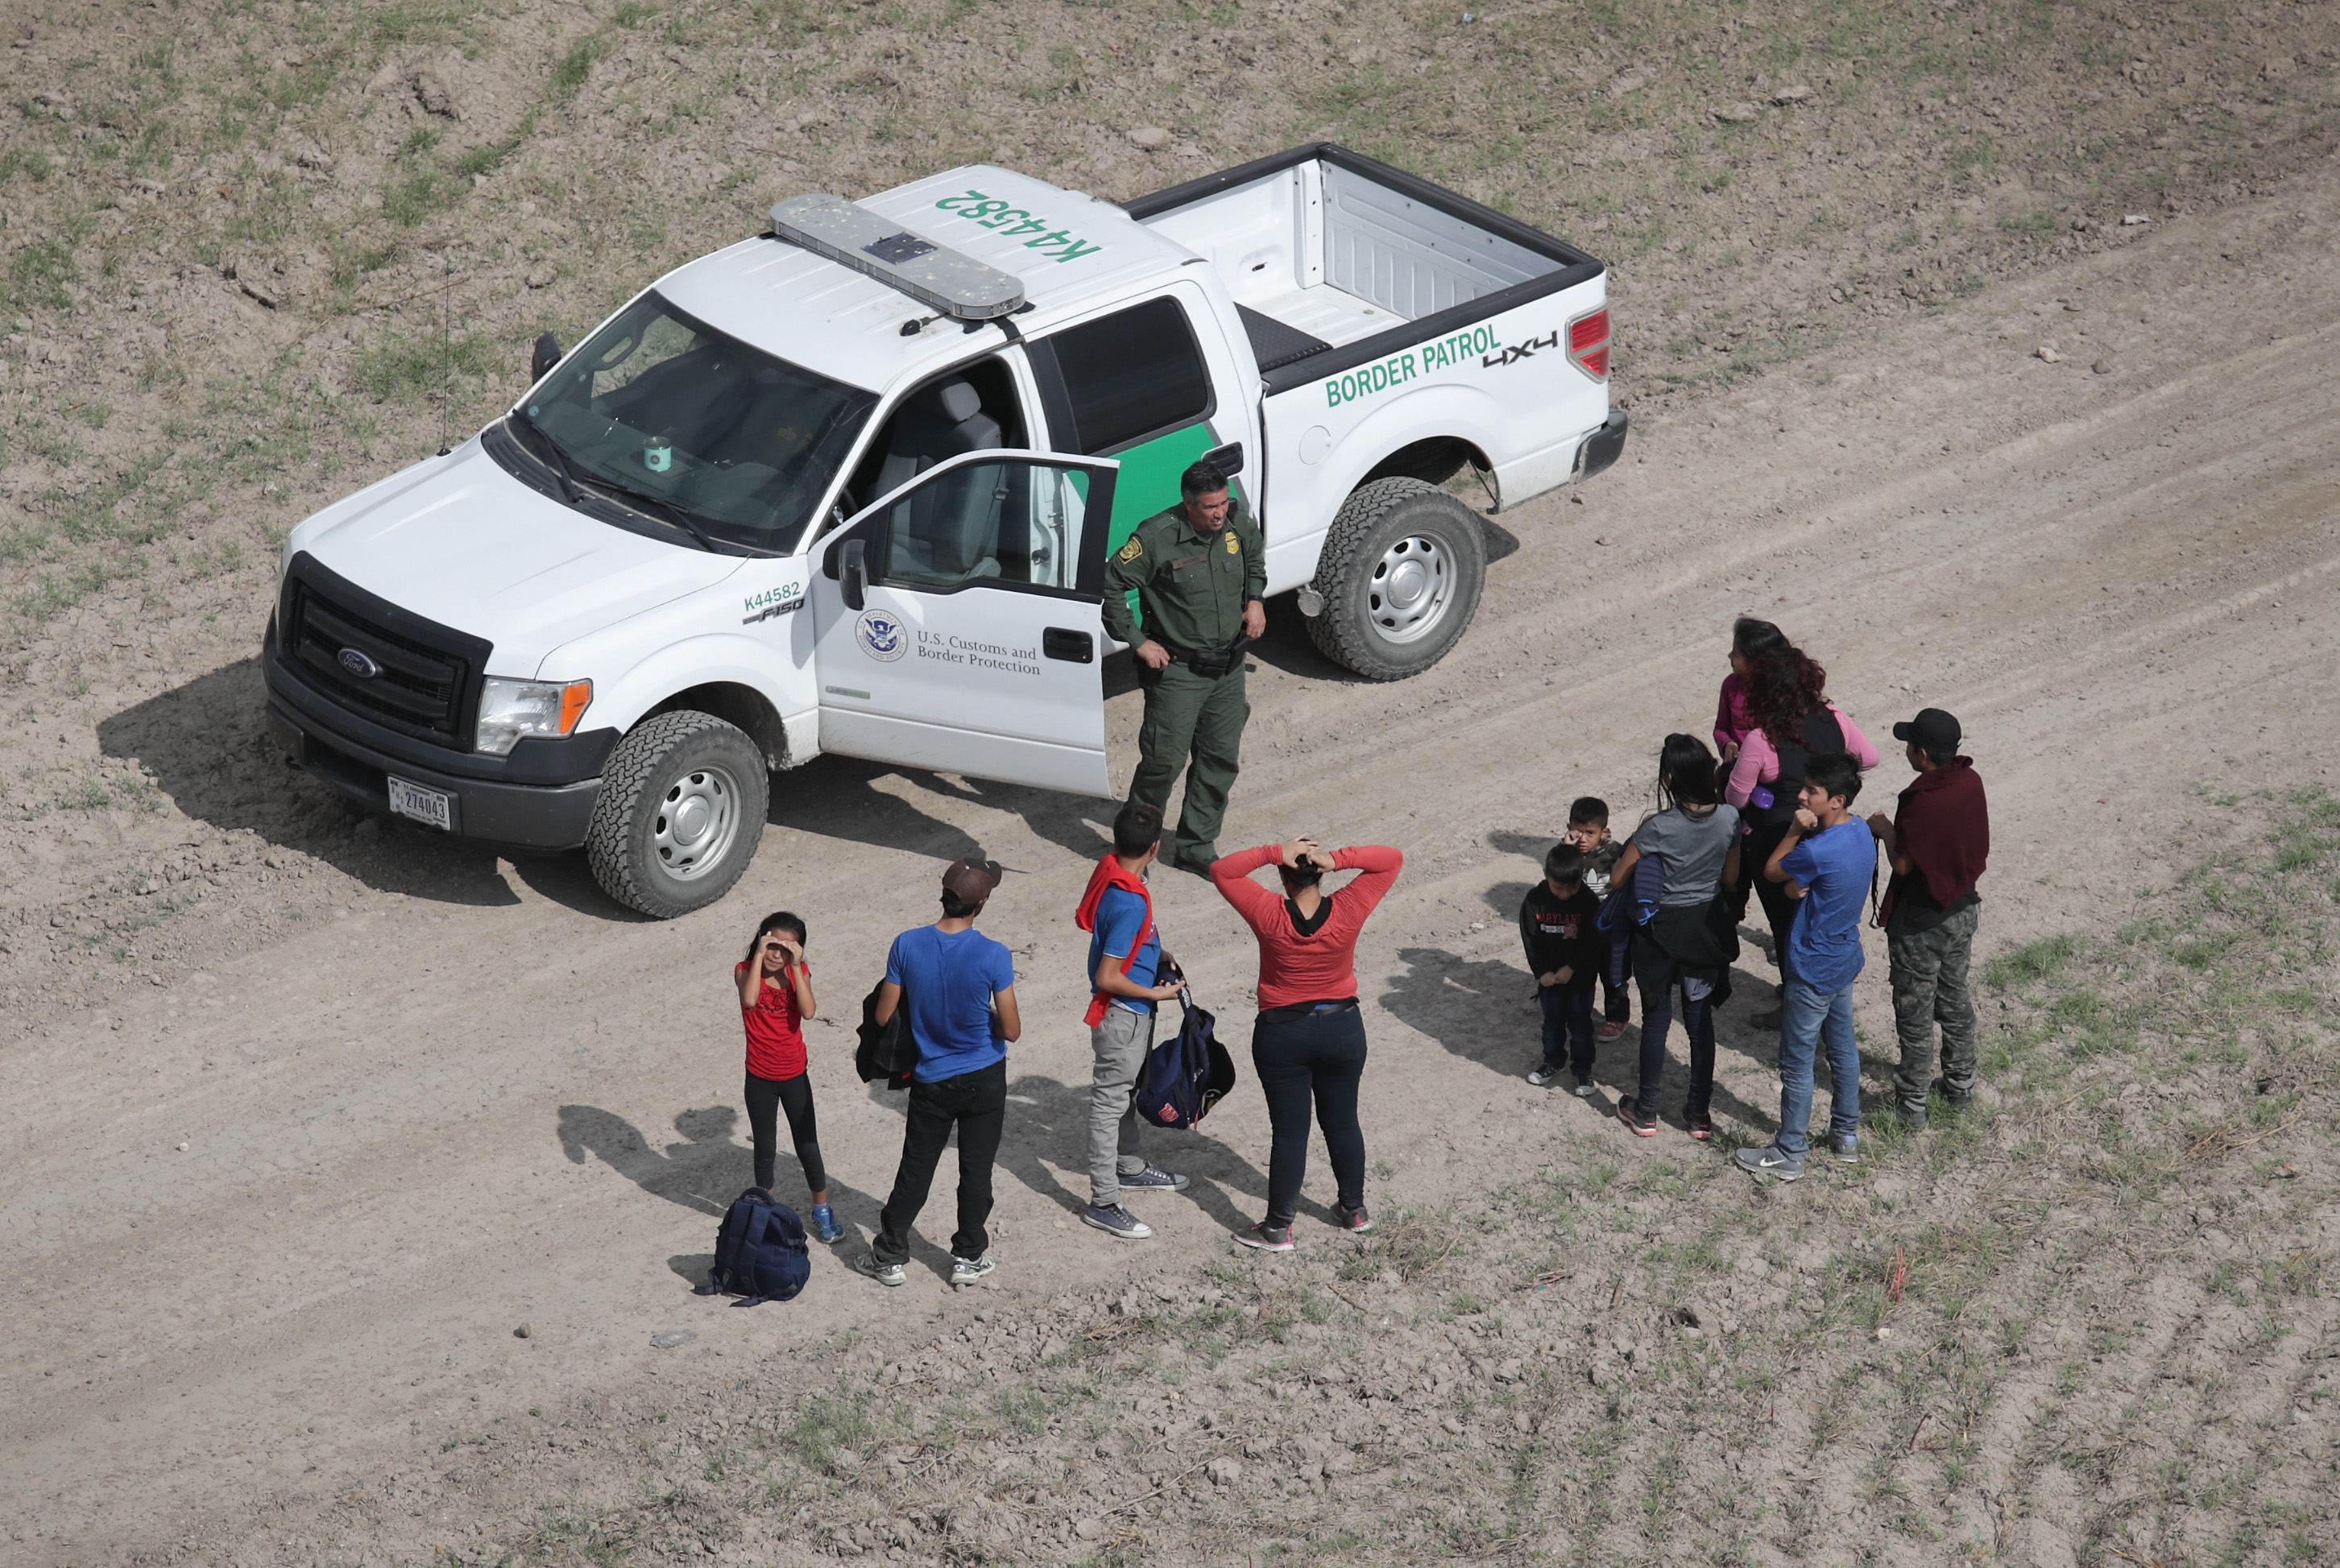 Trump administration tightens immigration asylum rules as caravans approach